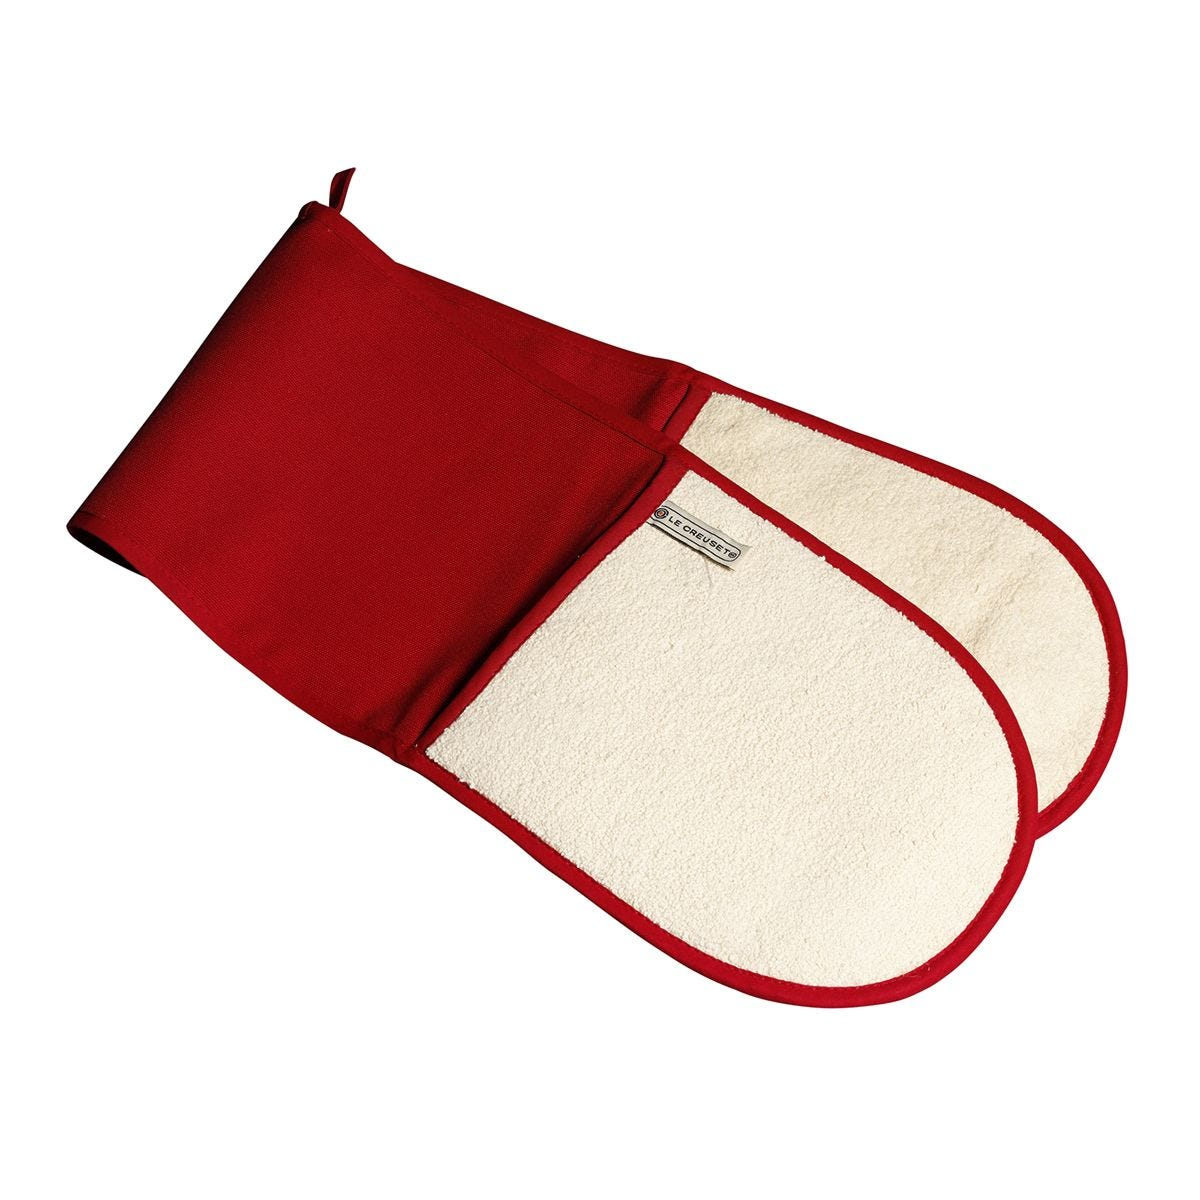 Le Creuset Double Oven Glove Red